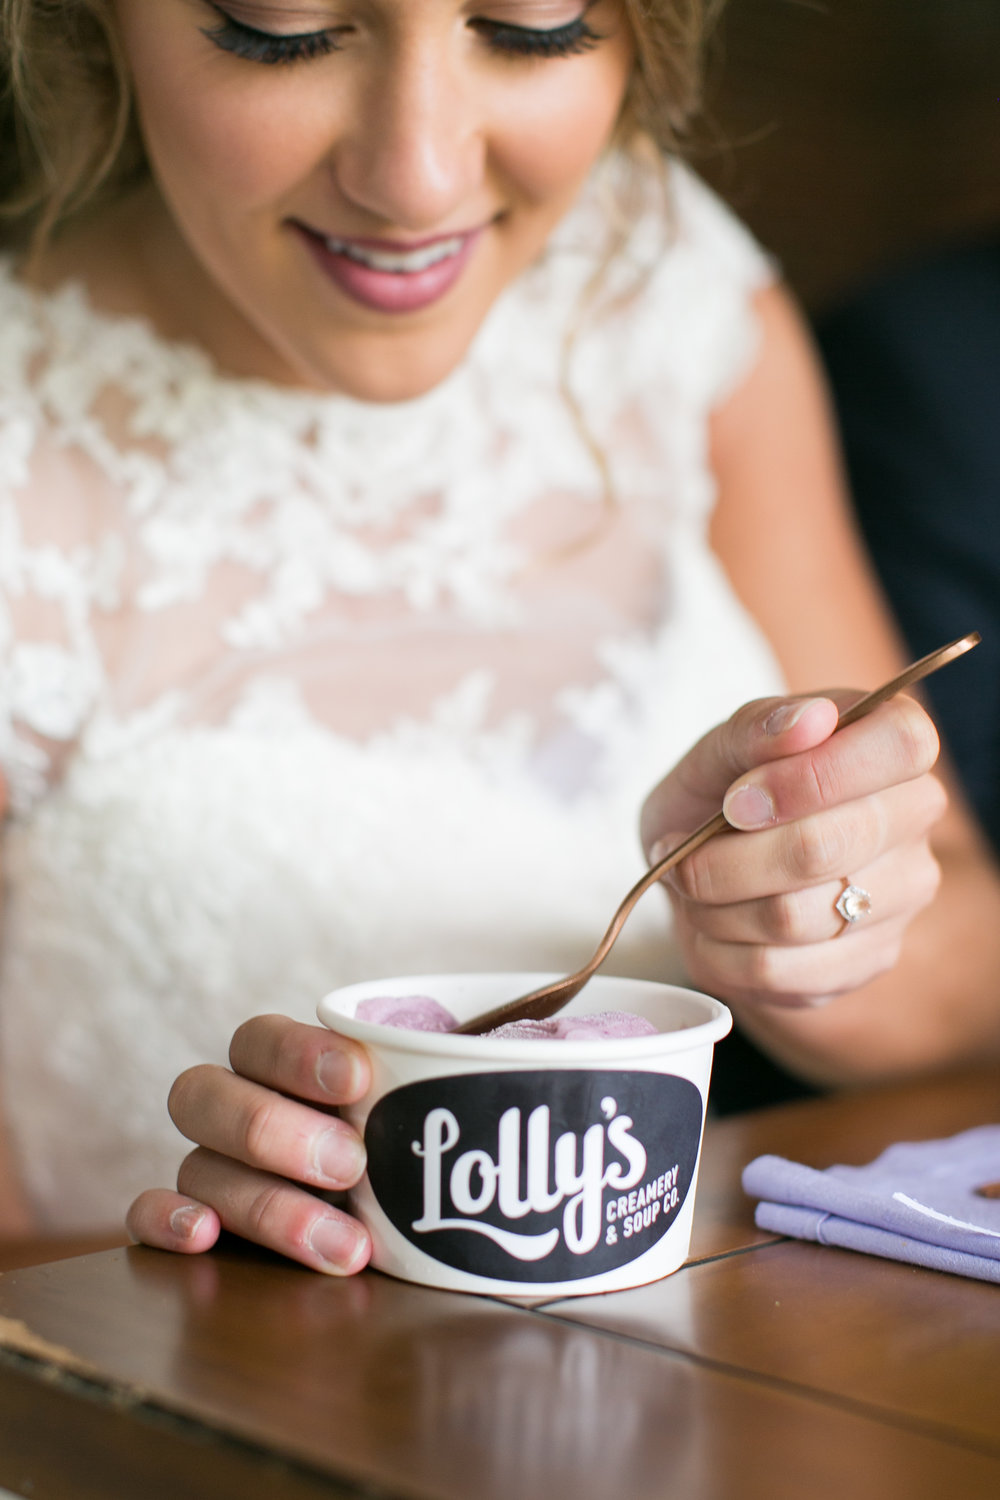 The Dessert... - Lolly's Creamery and Soup Co. ice cream of course!  And not just because I'm married to the man behind the brand!  I love a non-traditional dessert for a wedding day - especially when it's supporting a local small business!  We even stuck to our